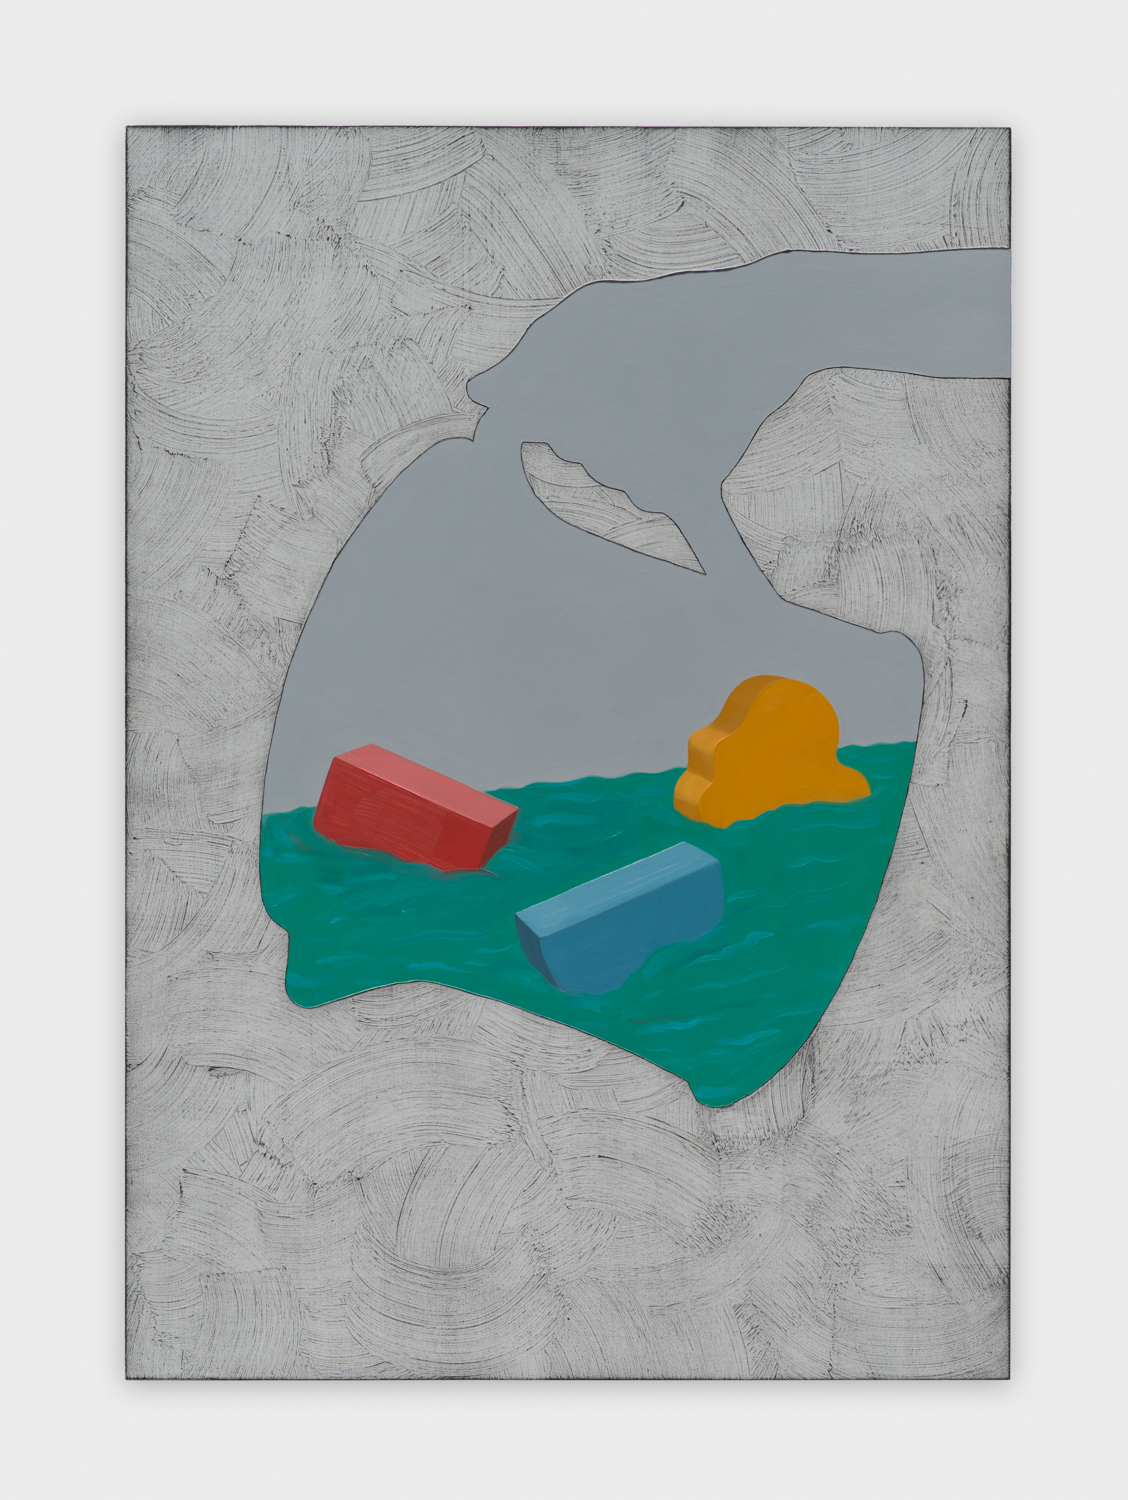 Alex Olson  Vessel (With Nod to Alberto Savinio)  2015 Oil and modeling paste on canvas 41h x 29w in AO180